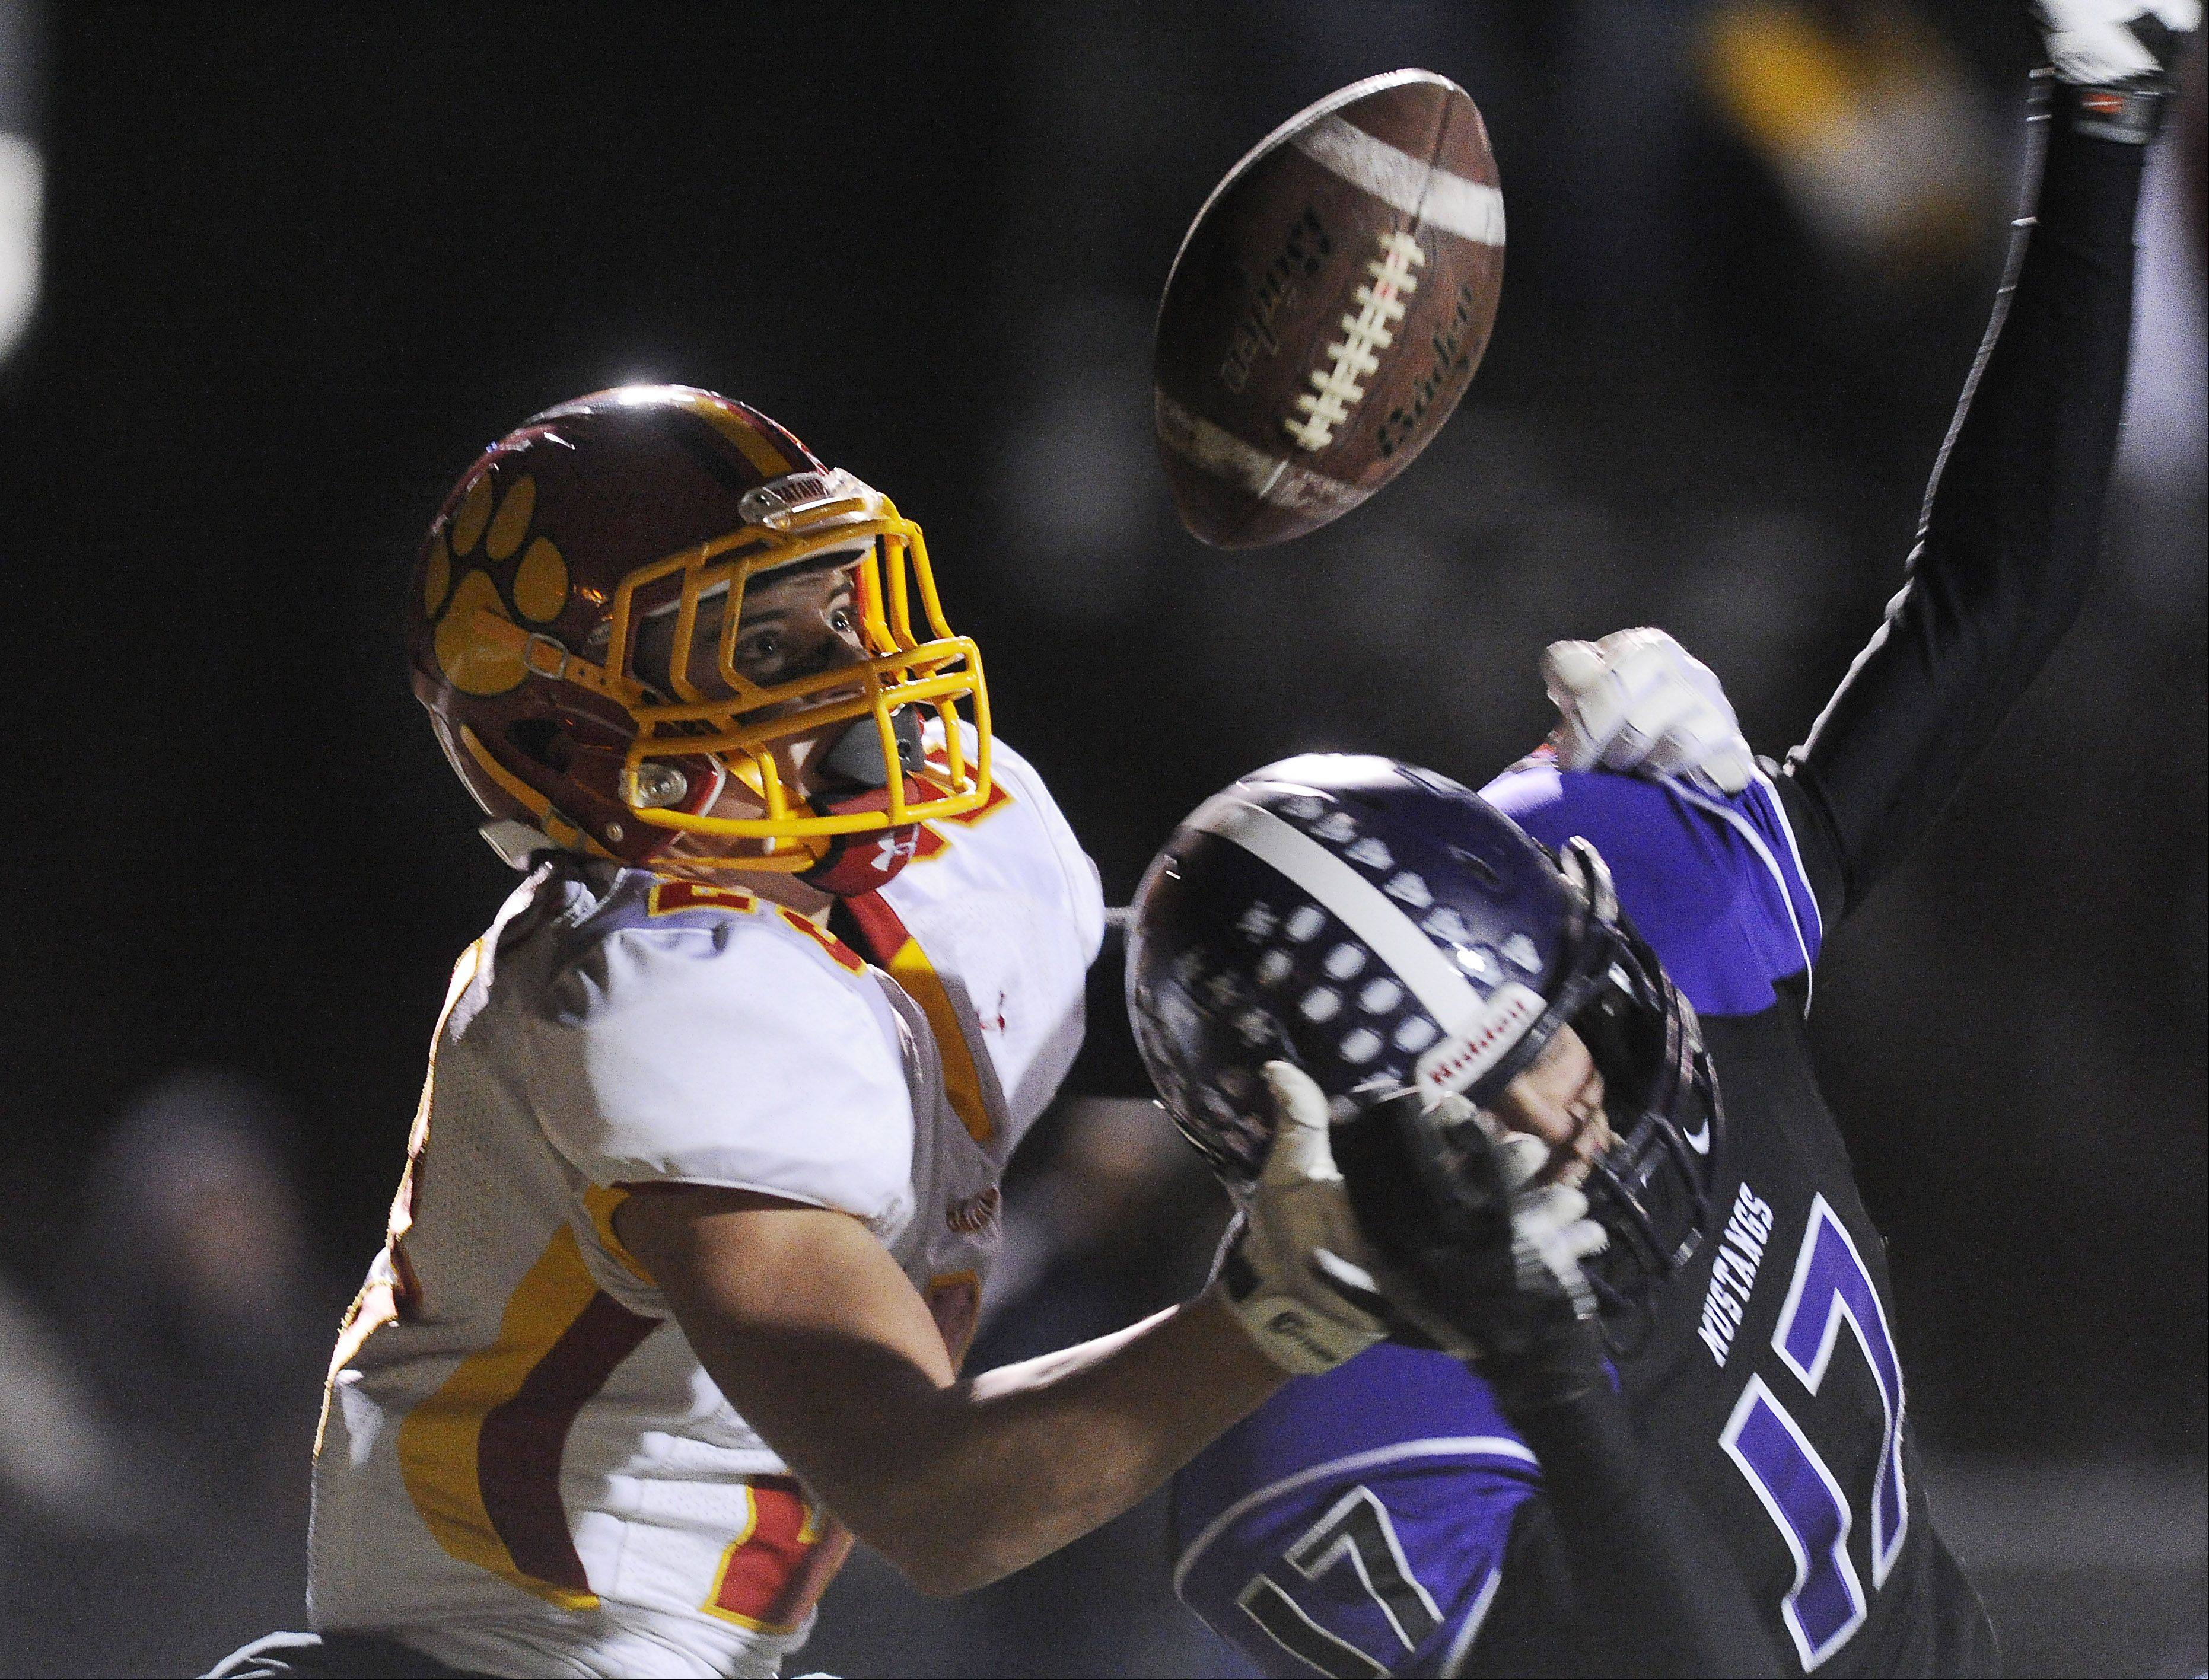 Batavia's Michael Moffatt keeps his eyes on the ball and hauls in a second-quarter touchdown over Rolling Meadows' Kevin Adair on Saturday at Rolling Meadows.